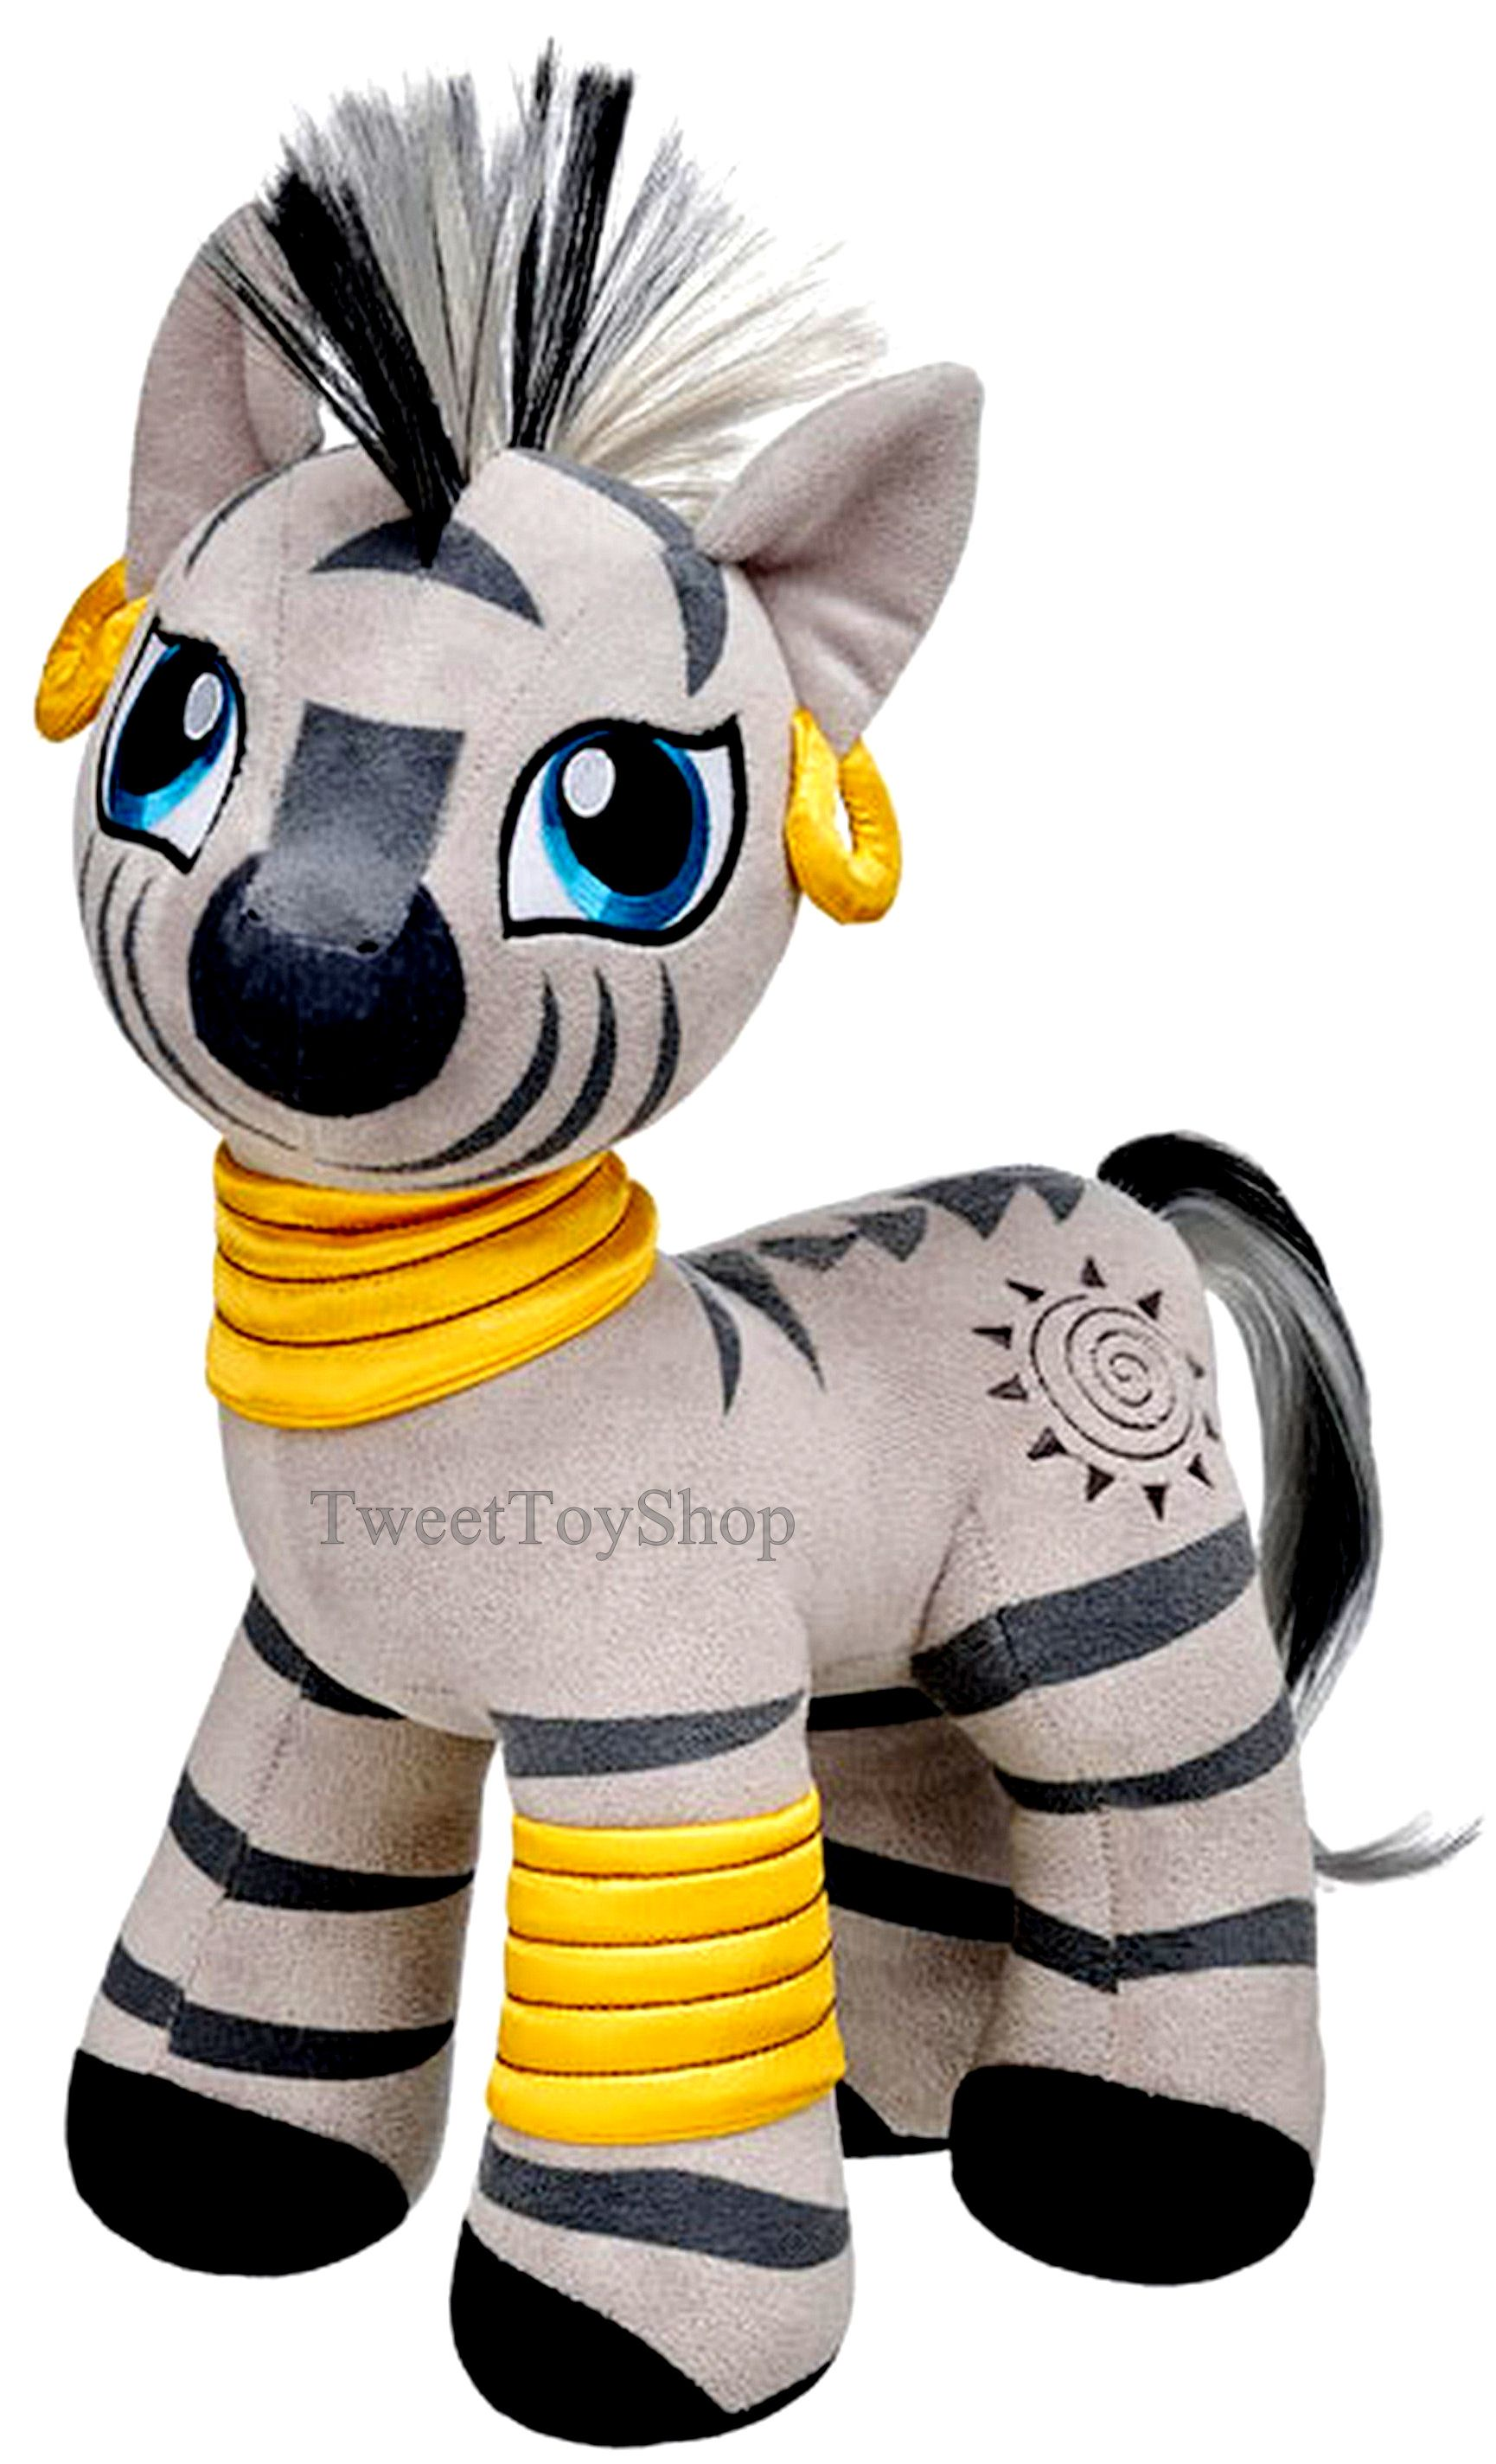 21815f638a8 NEW Build a Bear ZECORA Zebra 15 inch MLP My Little Pony Ponies Friend Stuffed  Plush